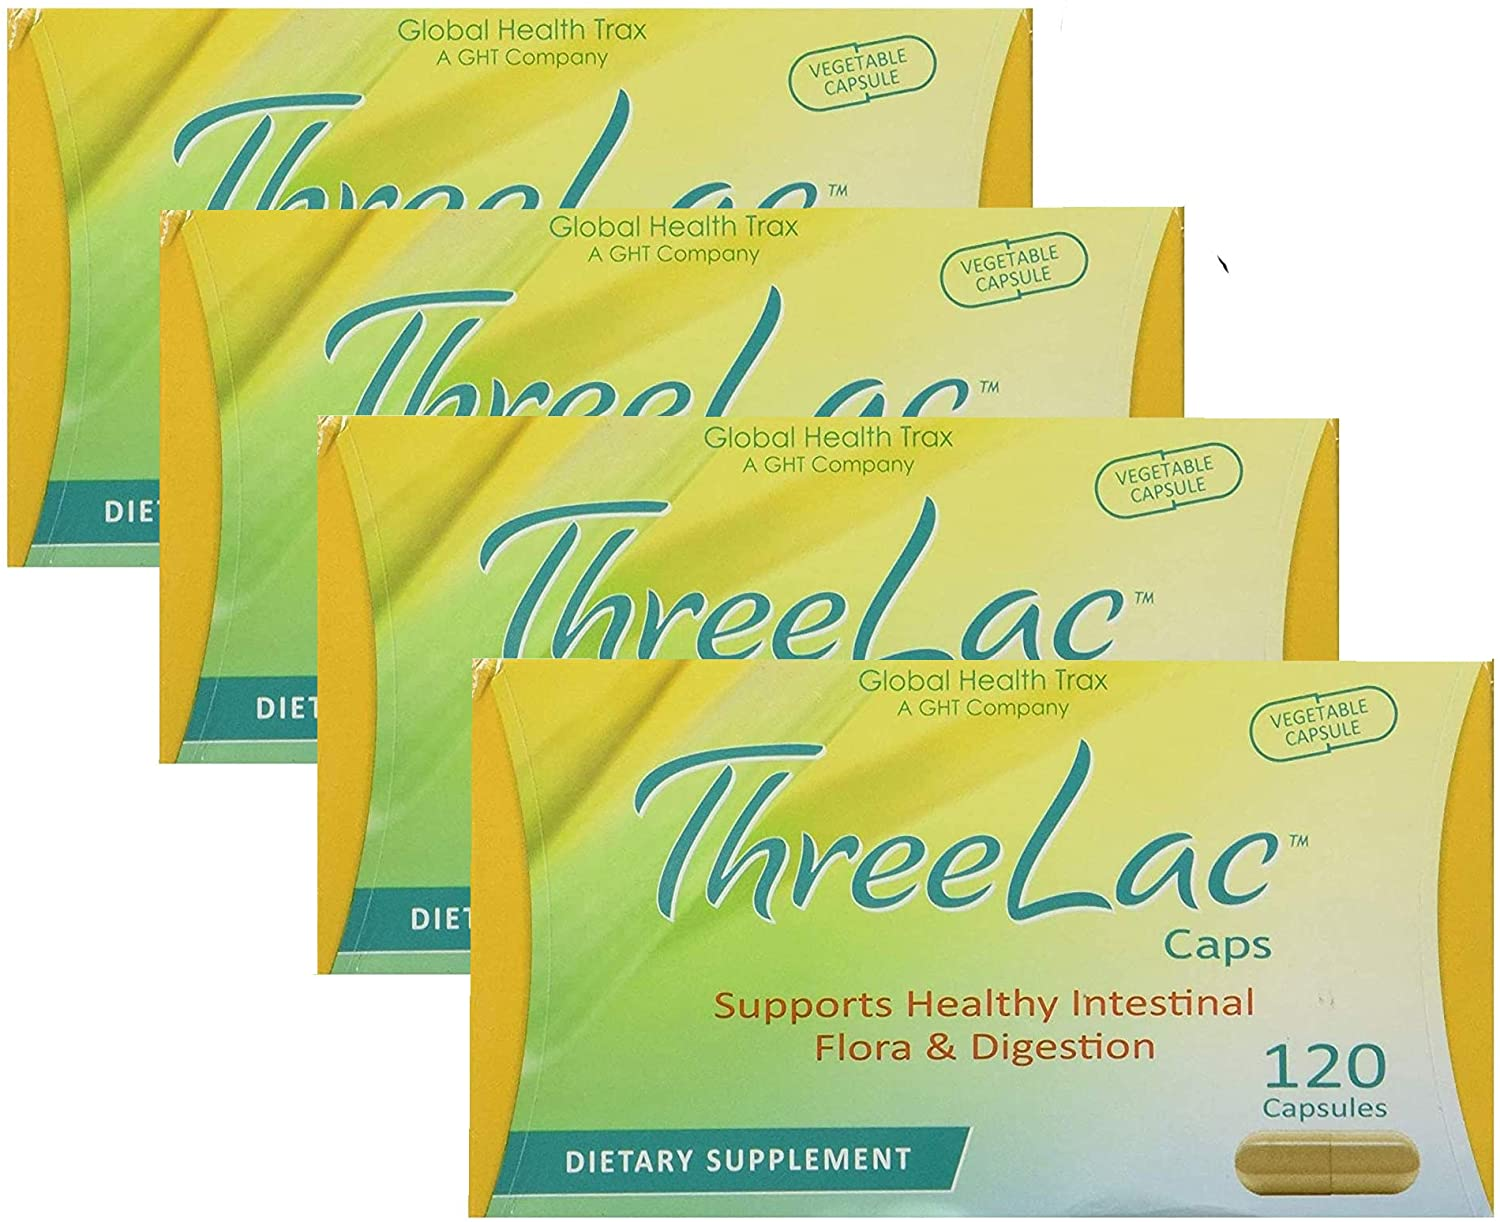 Global Health Trax Threelac Caps Supports Healthy Intestinal Flora & Digestion Dietary Supplement Probiotic 120 Capsules Pack 4